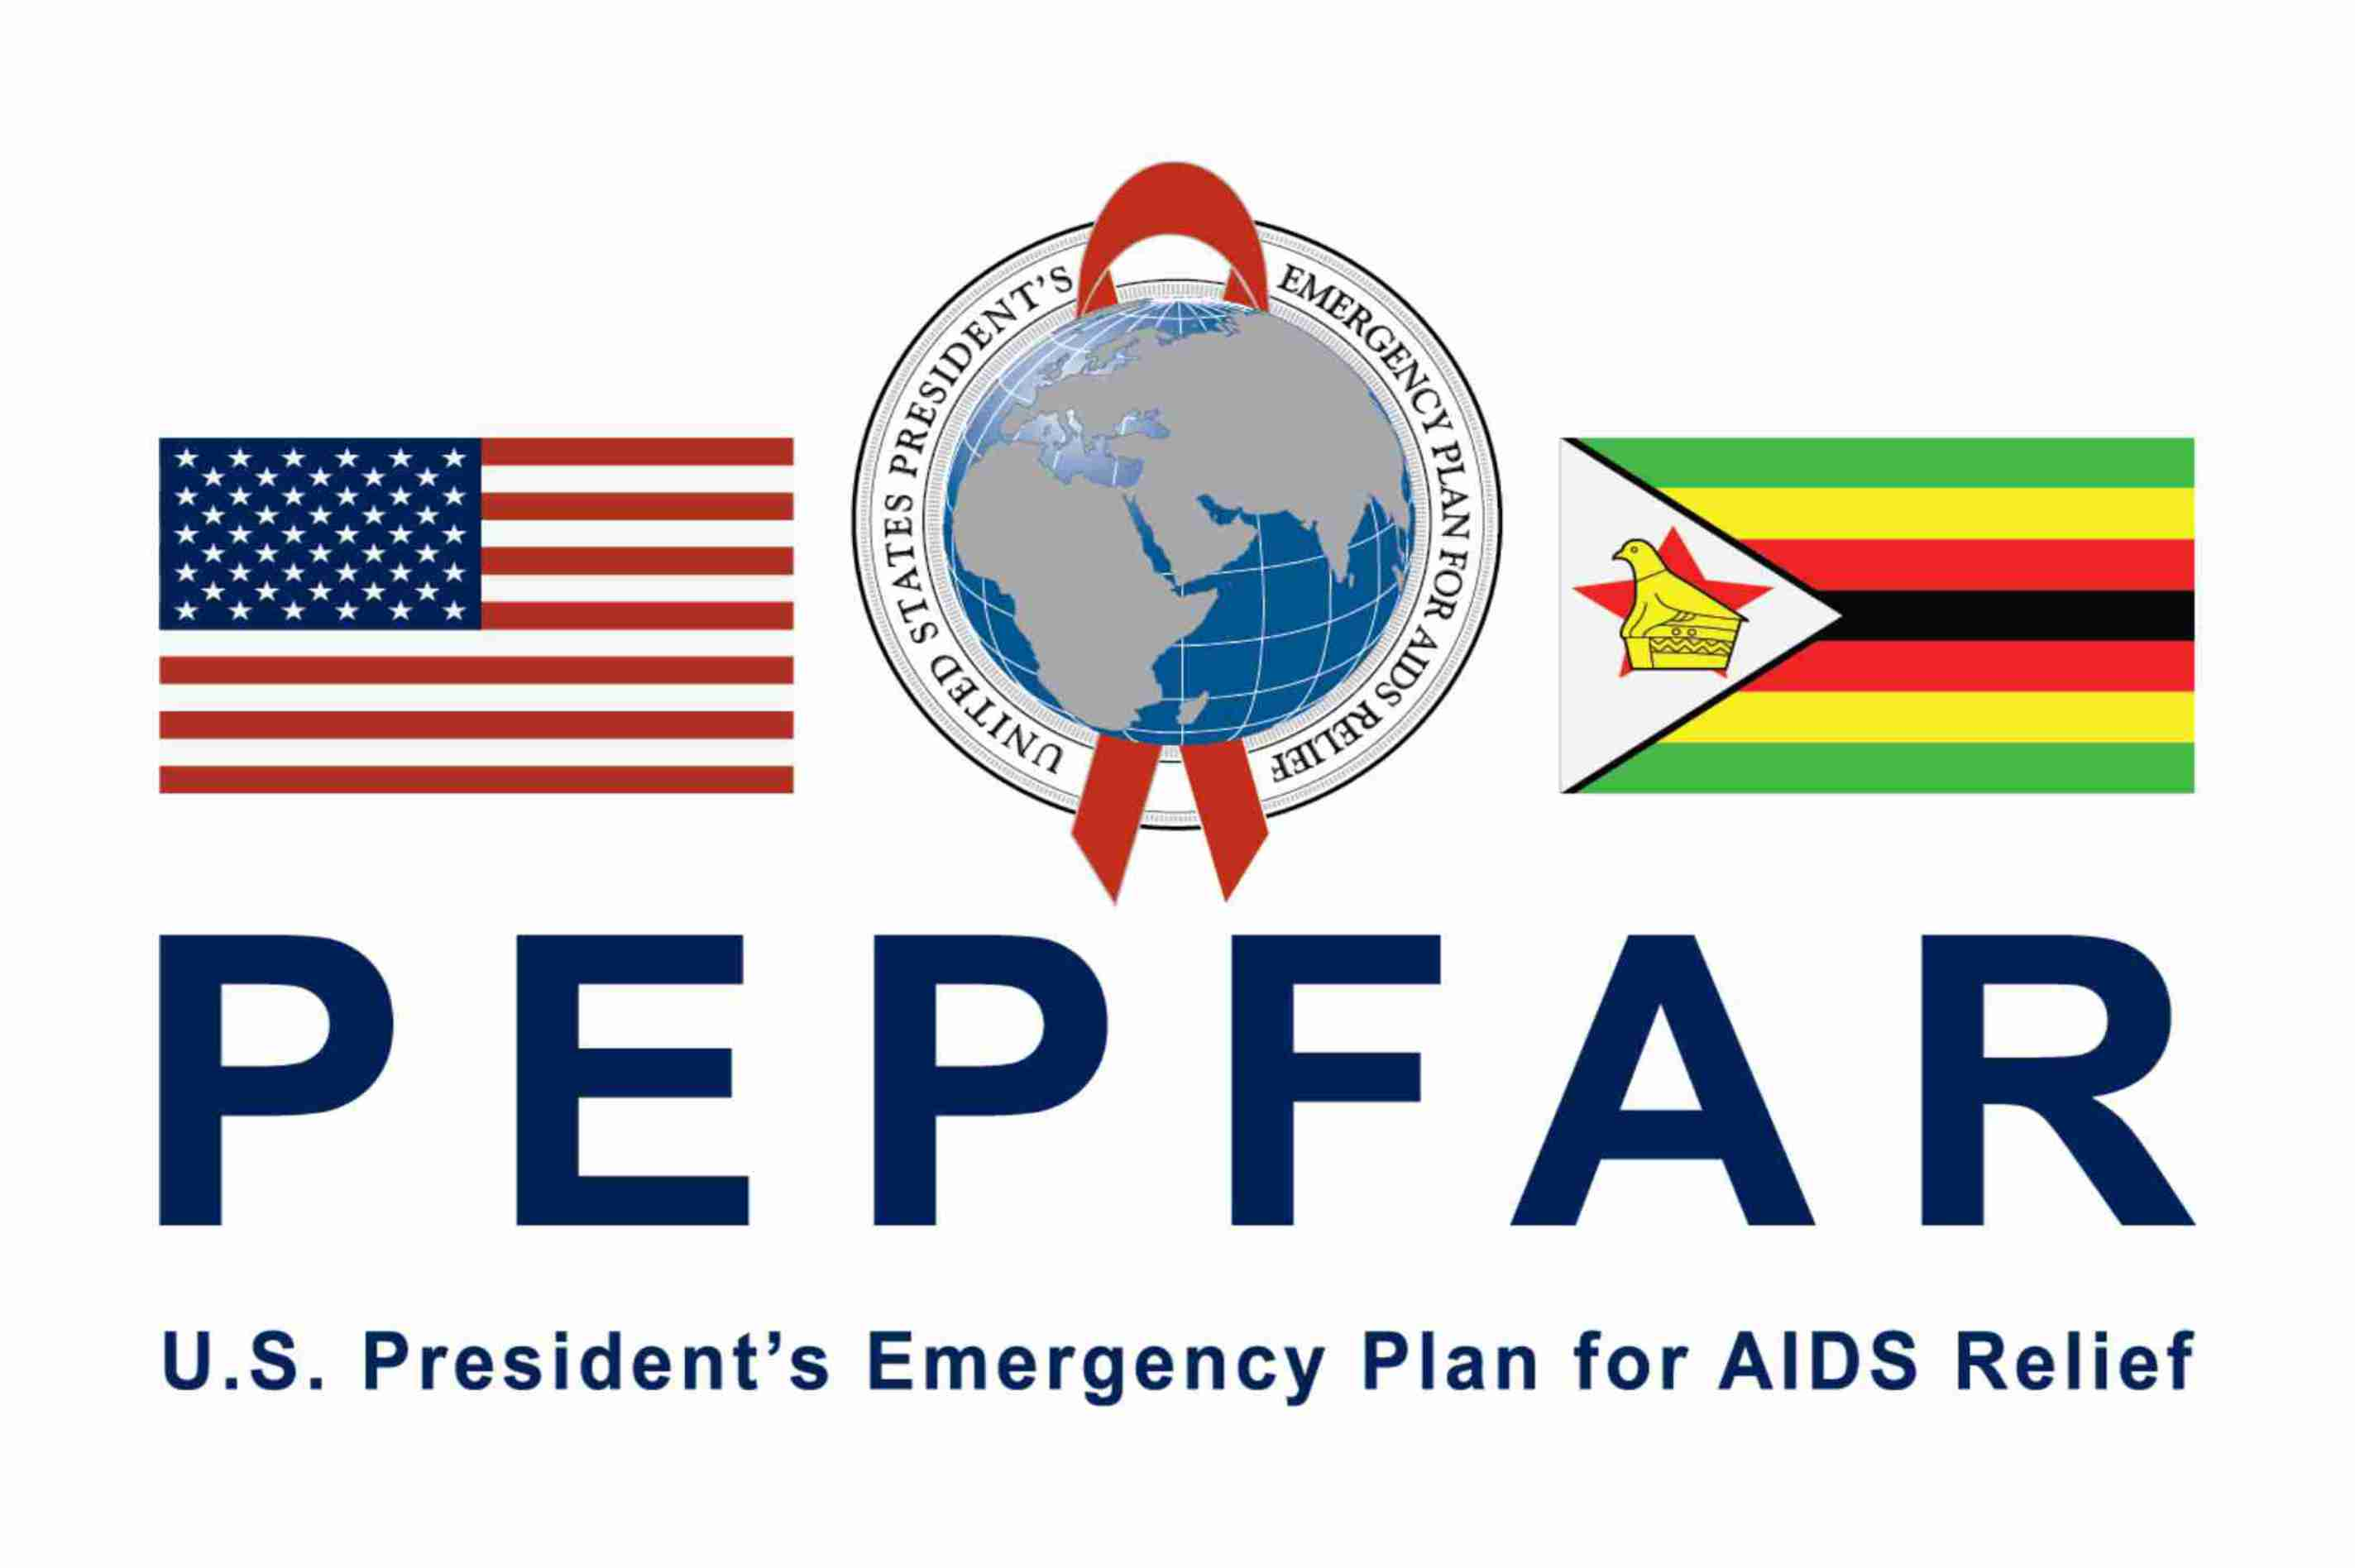 pepfar E-Newsletter cover